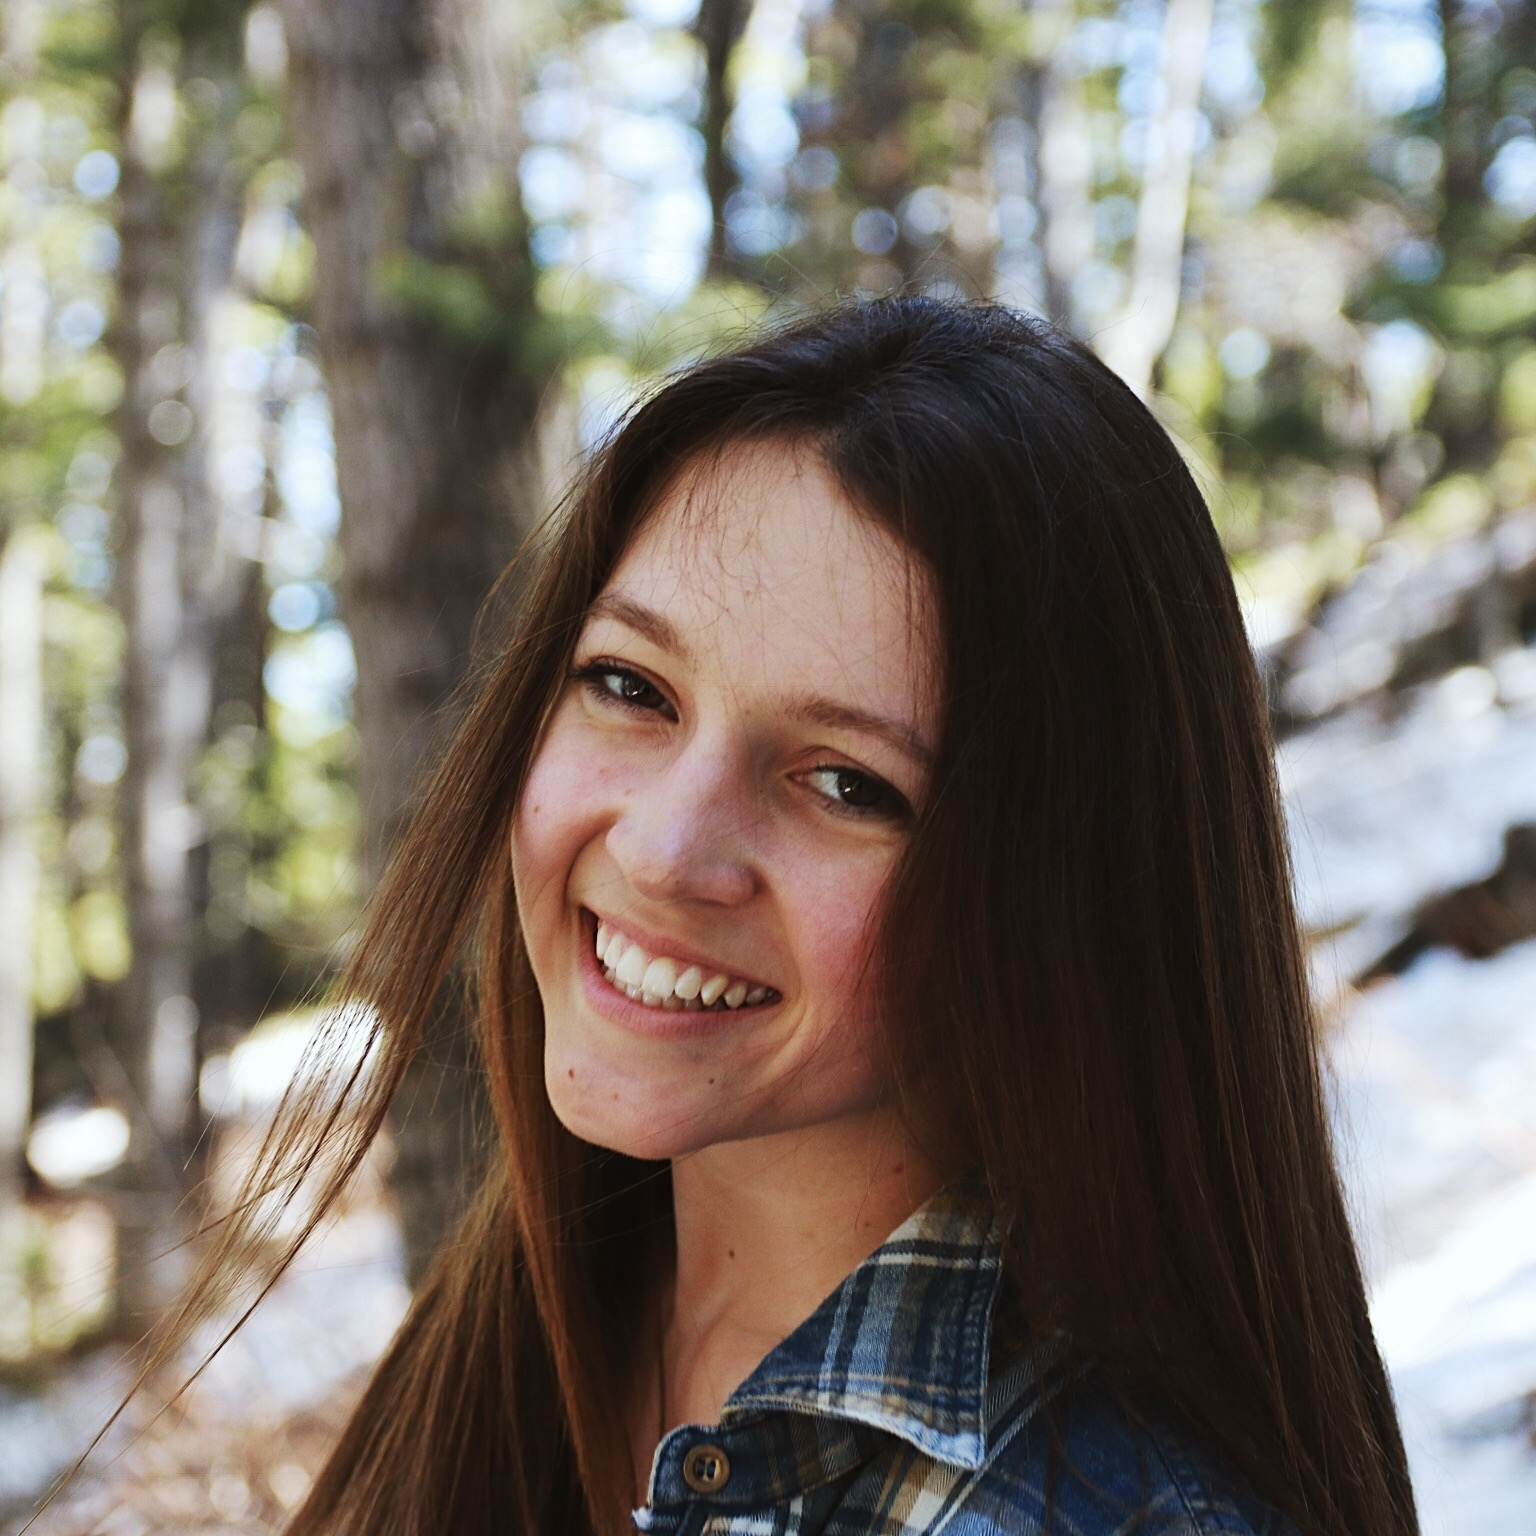 Dani Ball '22 - Campus EventsDani Ball is a Freshman from Park City, Utah in Rockefeller College. She is planning on studying Environmental Engineering, while taking as many classes in the humanities fields as possible. She is interested in furthering sustainable technology while working to broaden its reach and application throughout society. She also enjoys spending time with friends and family, exploring, and playing music.